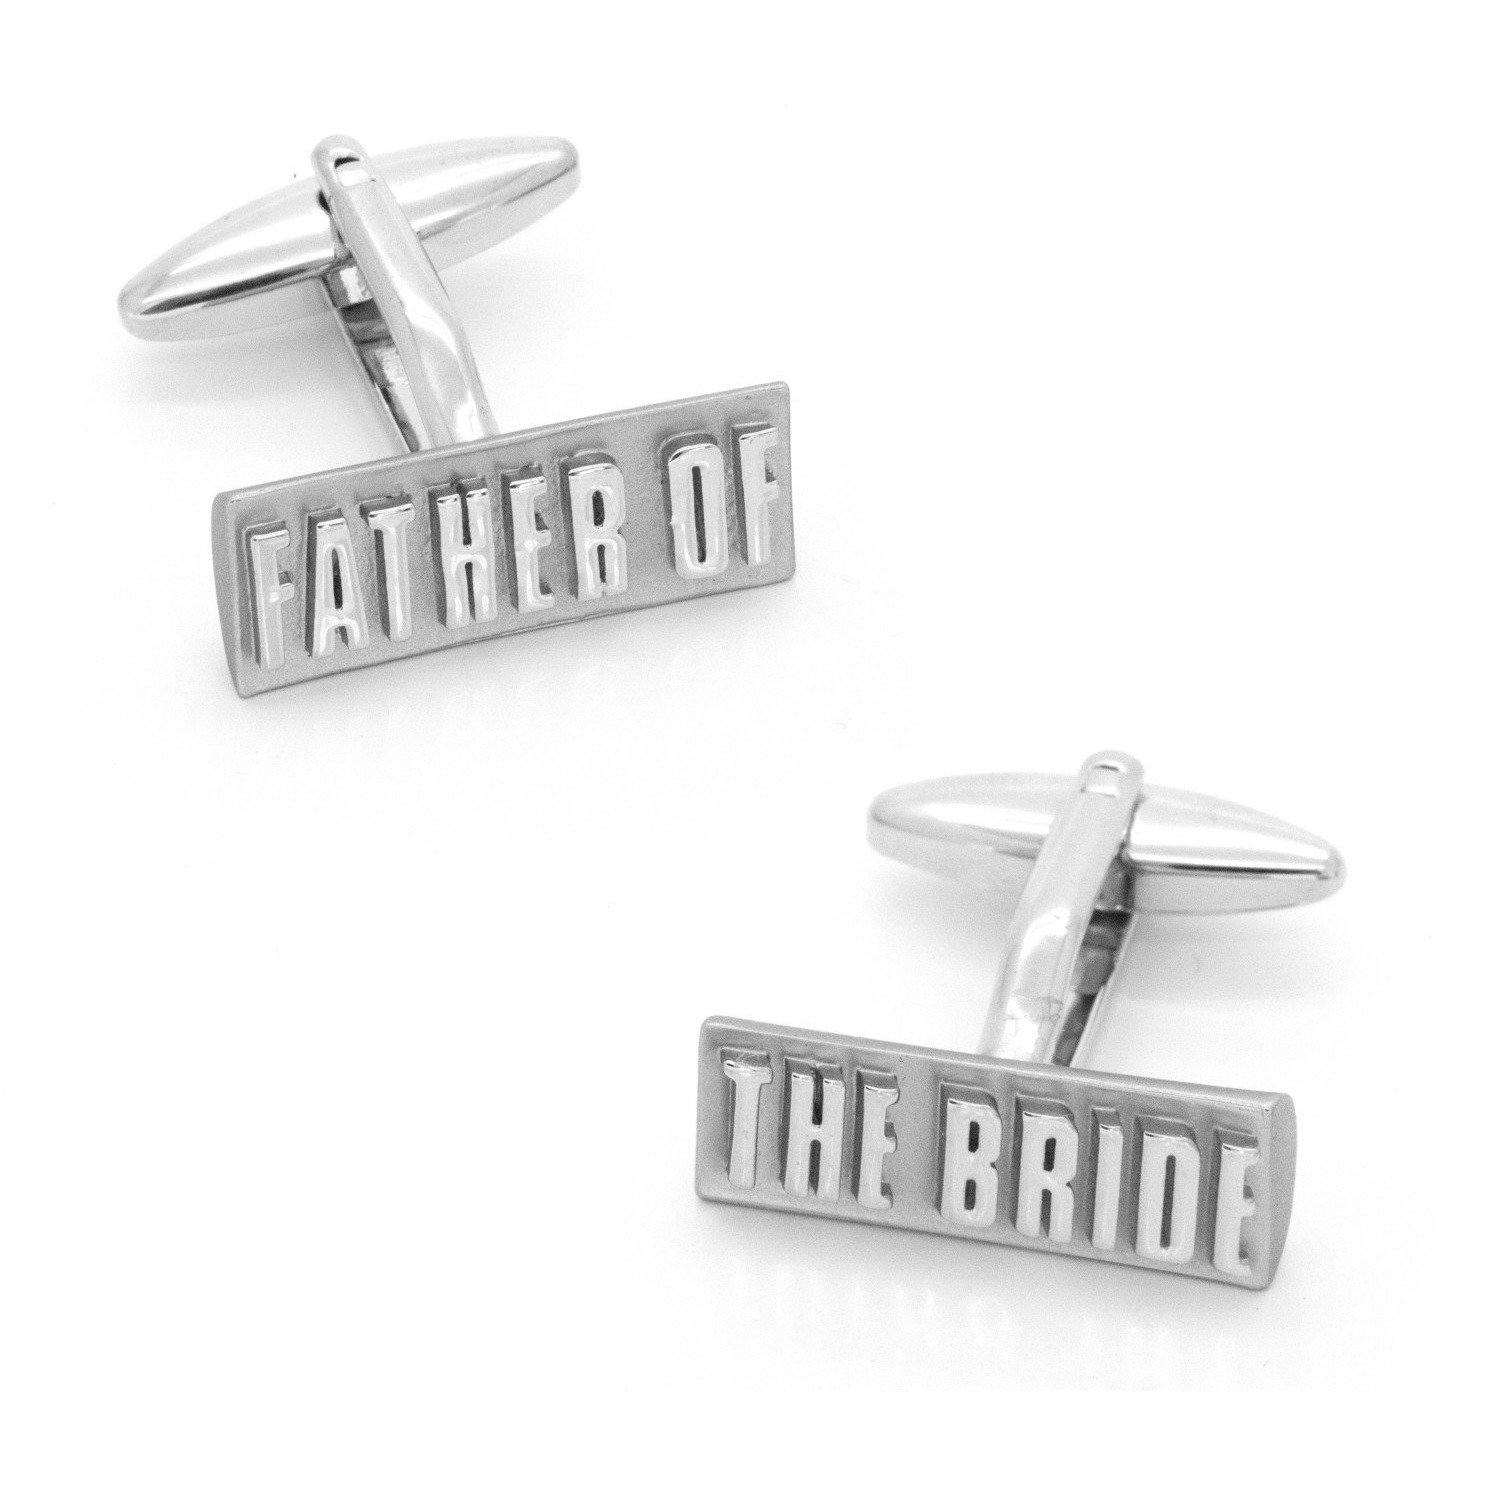 Father of the Bride Raised Lettering Cufflinks, Wedding Cufflinks, Cuffed.com.au, CL9554, $59.95